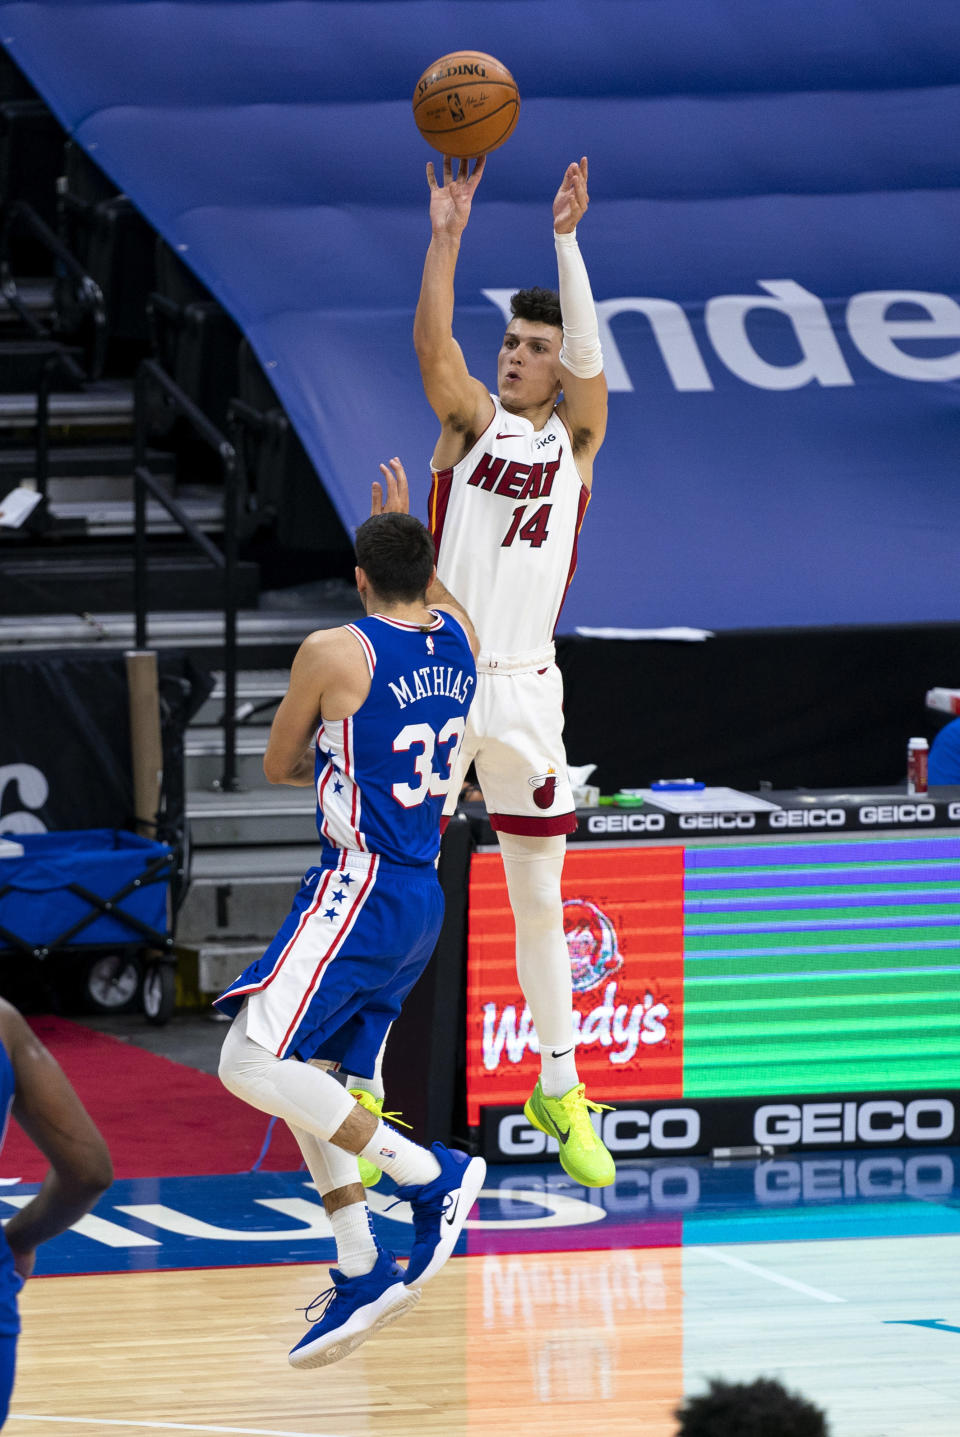 Miami Heat's Tyler Herro, right, releases a 3-point shot over Philadelphia 76ers' Dakota Mathias, left, during overtime of an NBA basketball game Tuesday, Jan. 12, 2021, in Philadelphia. (AP Photo/Chris Szagola)